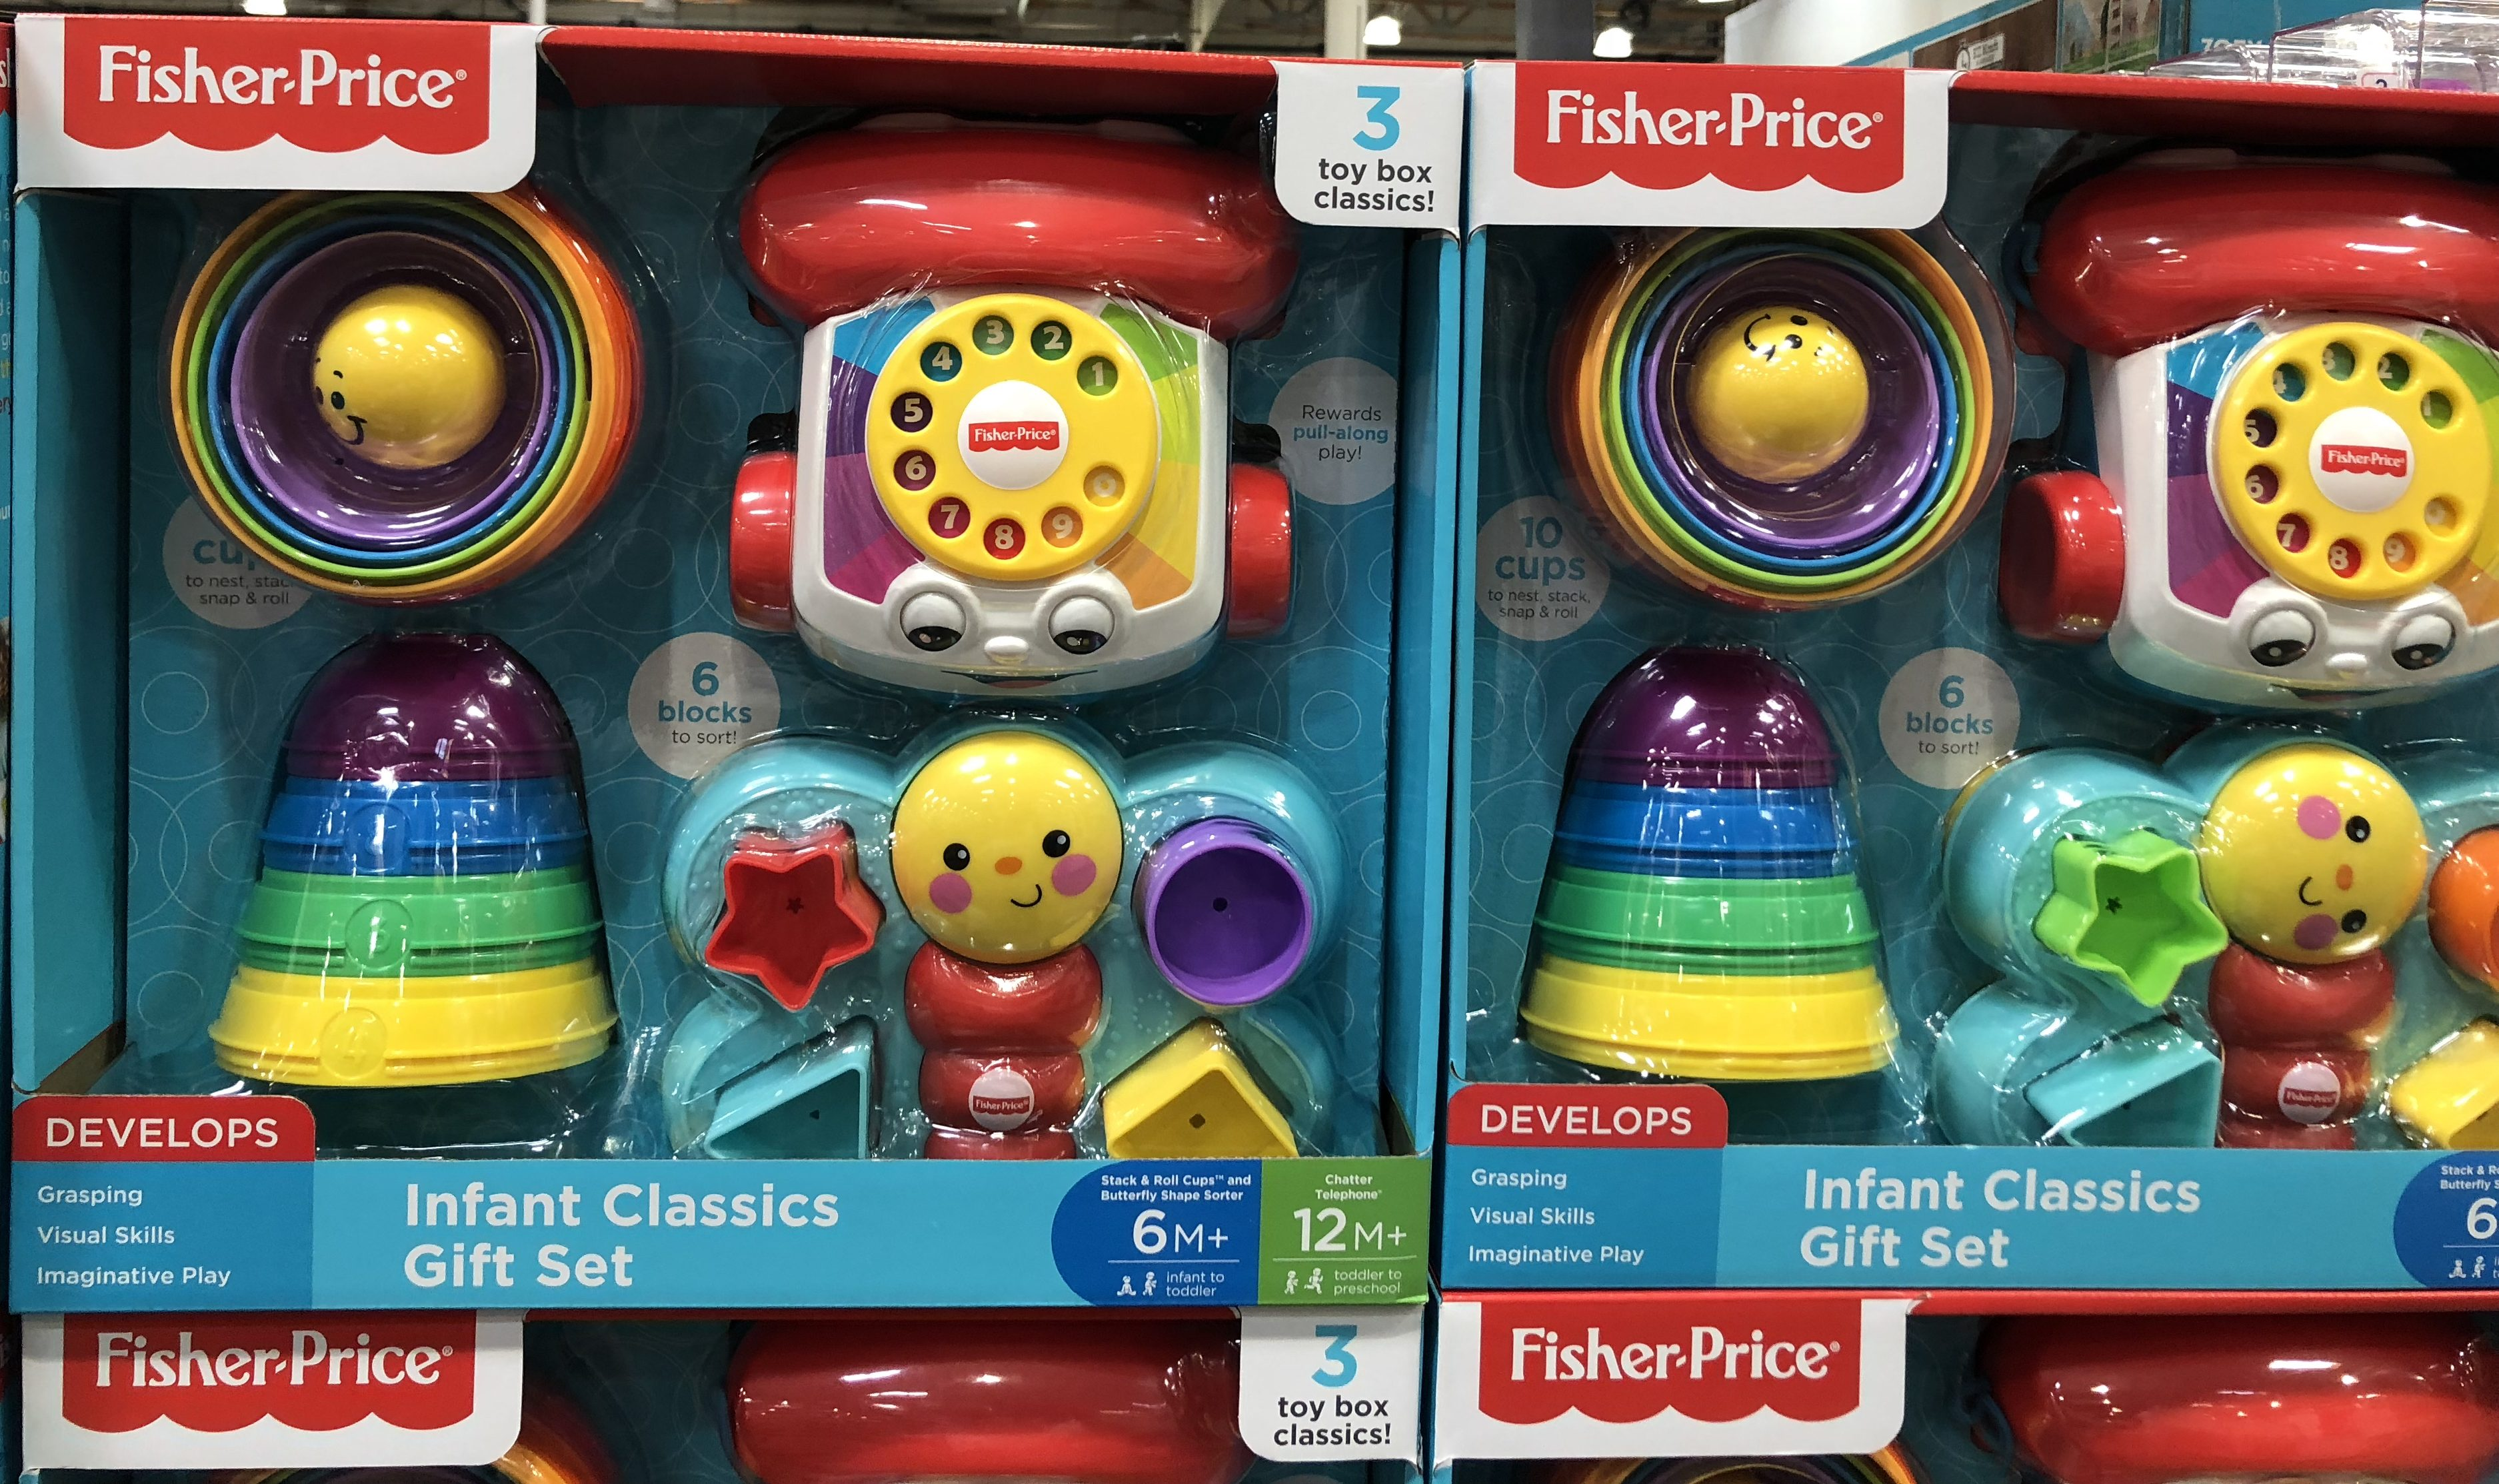 The best holiday toy deals for 2018 include the Fisher-Price Infant Gift Set at Costco